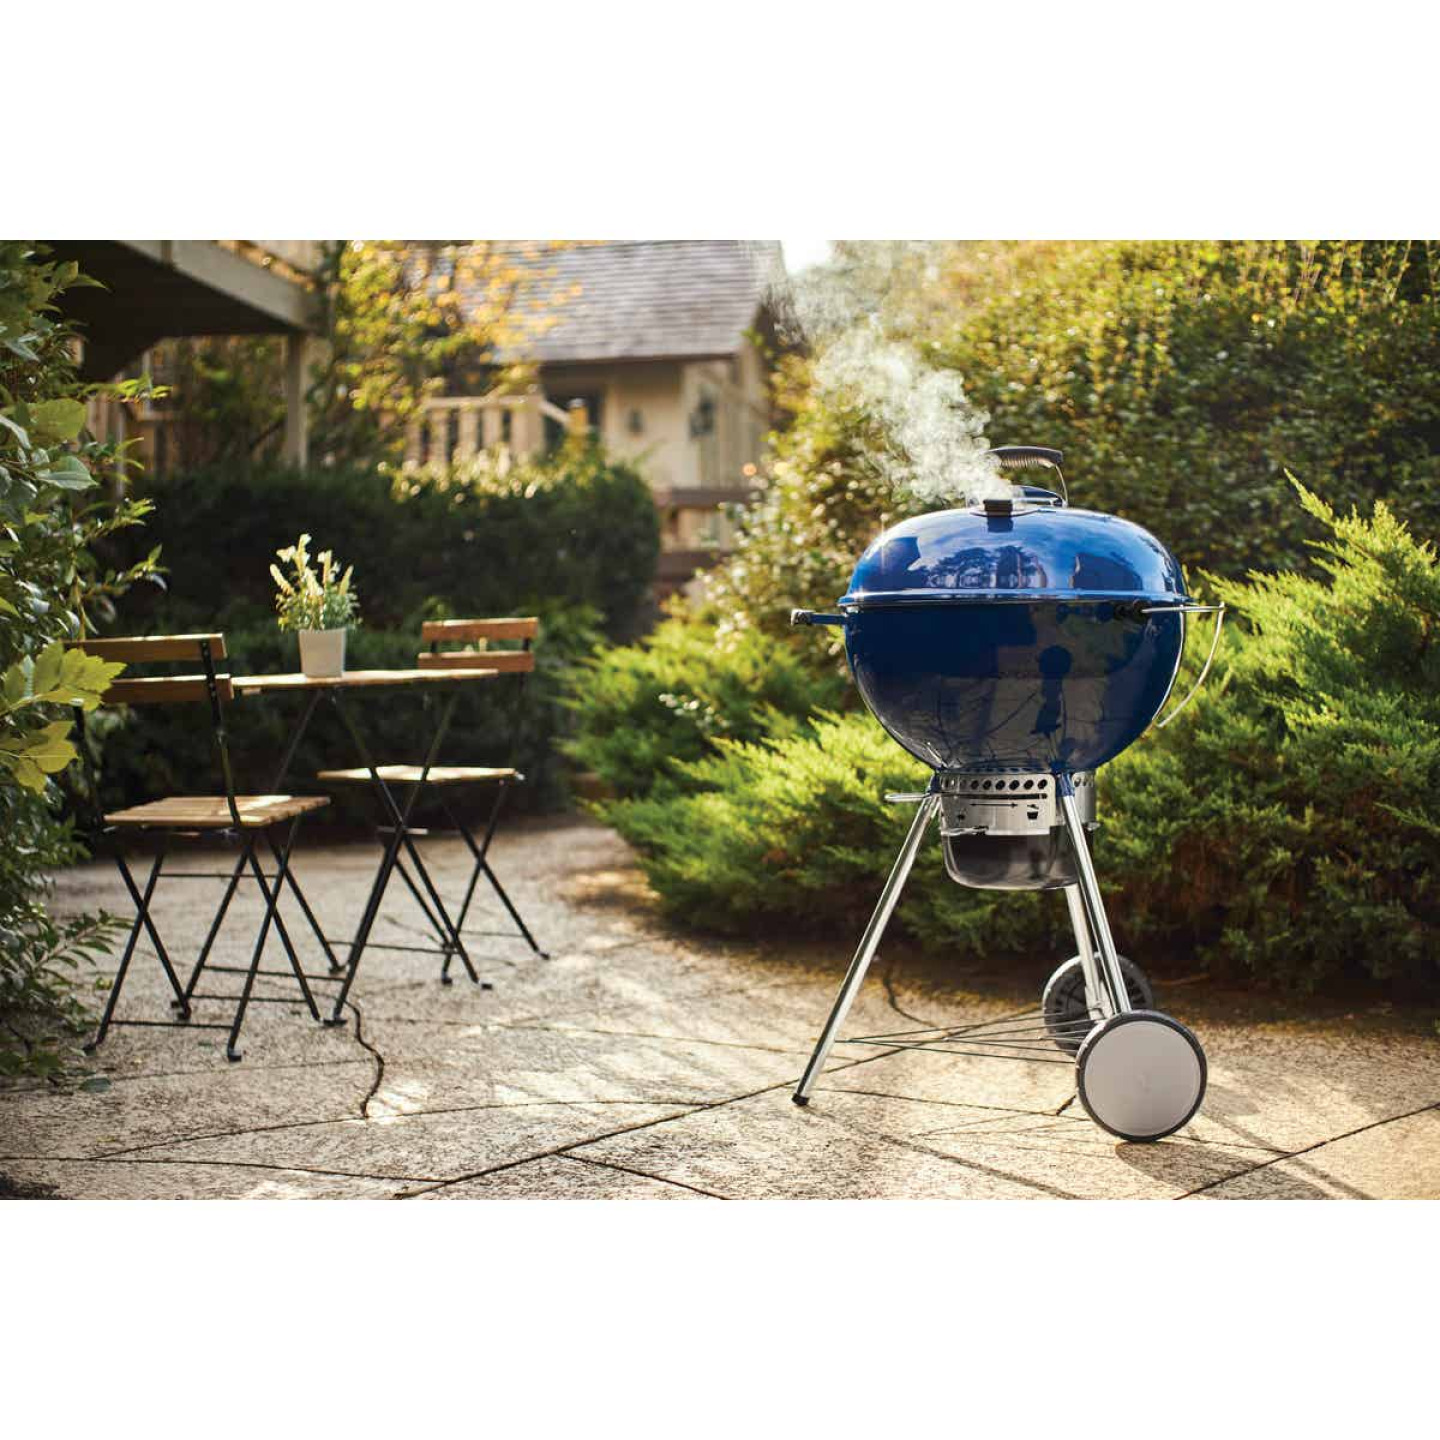 Weber Master-Touch 22 In. Dia. Deep Ocean Blue Charcoal Grill Image 2